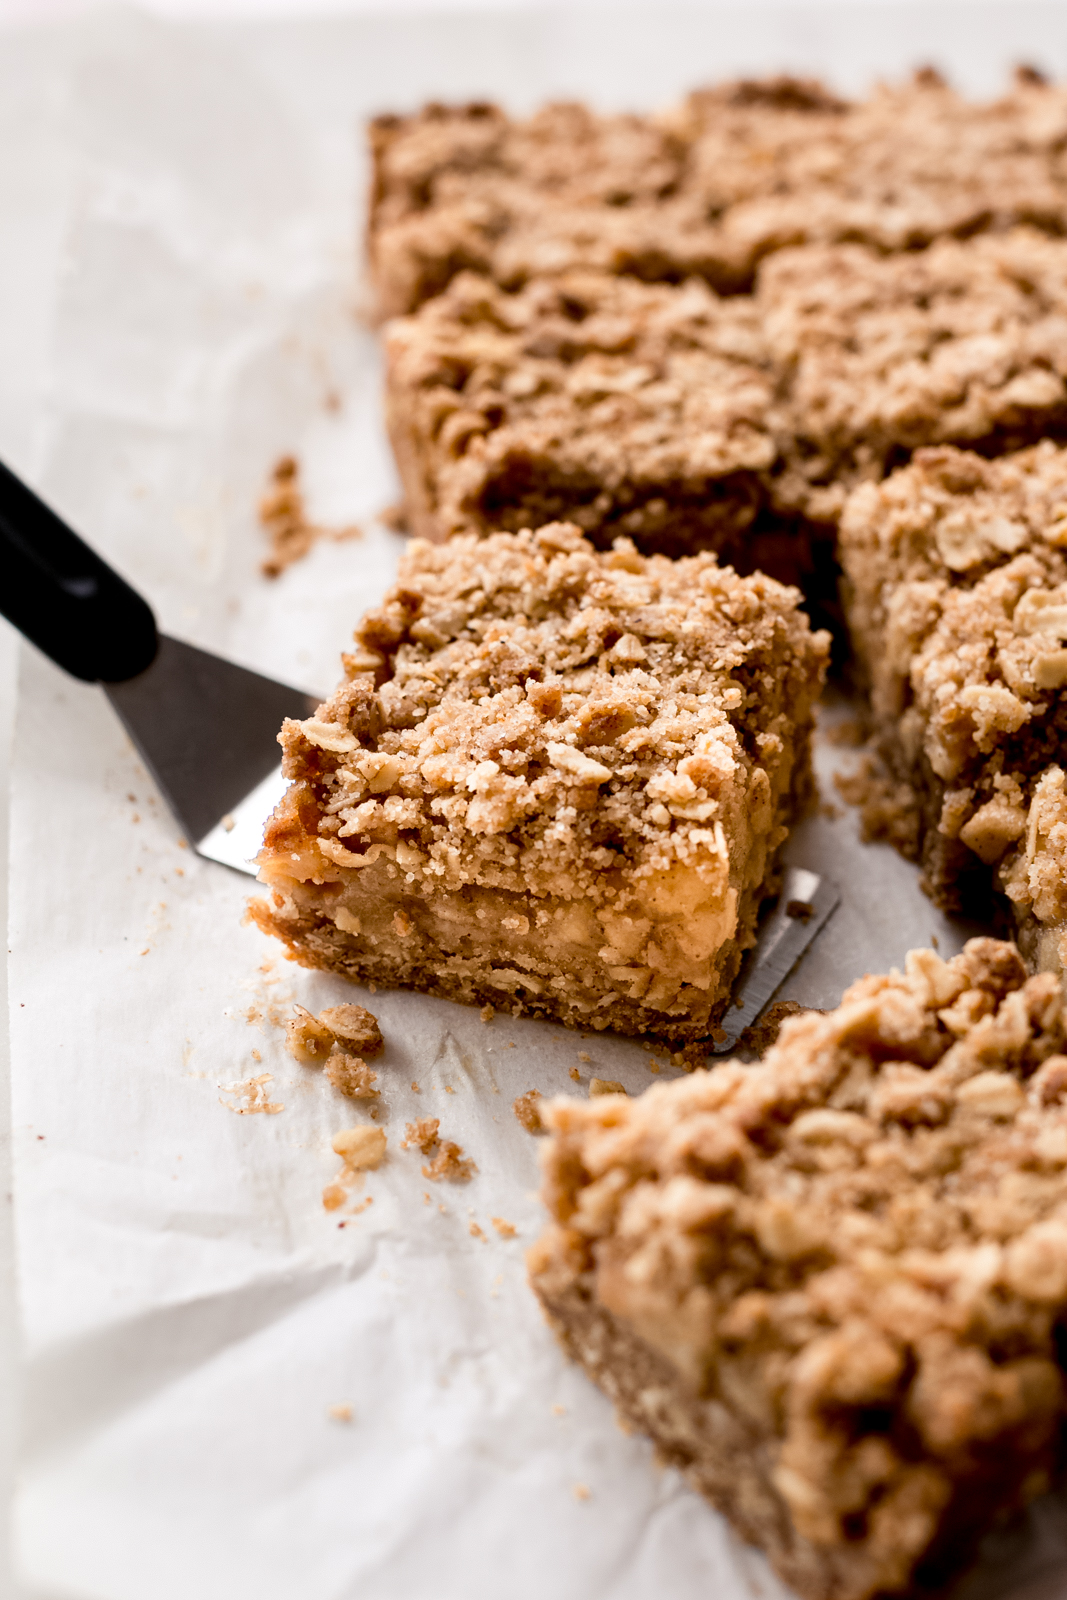 a crumble bar on spatula on white parchment paper